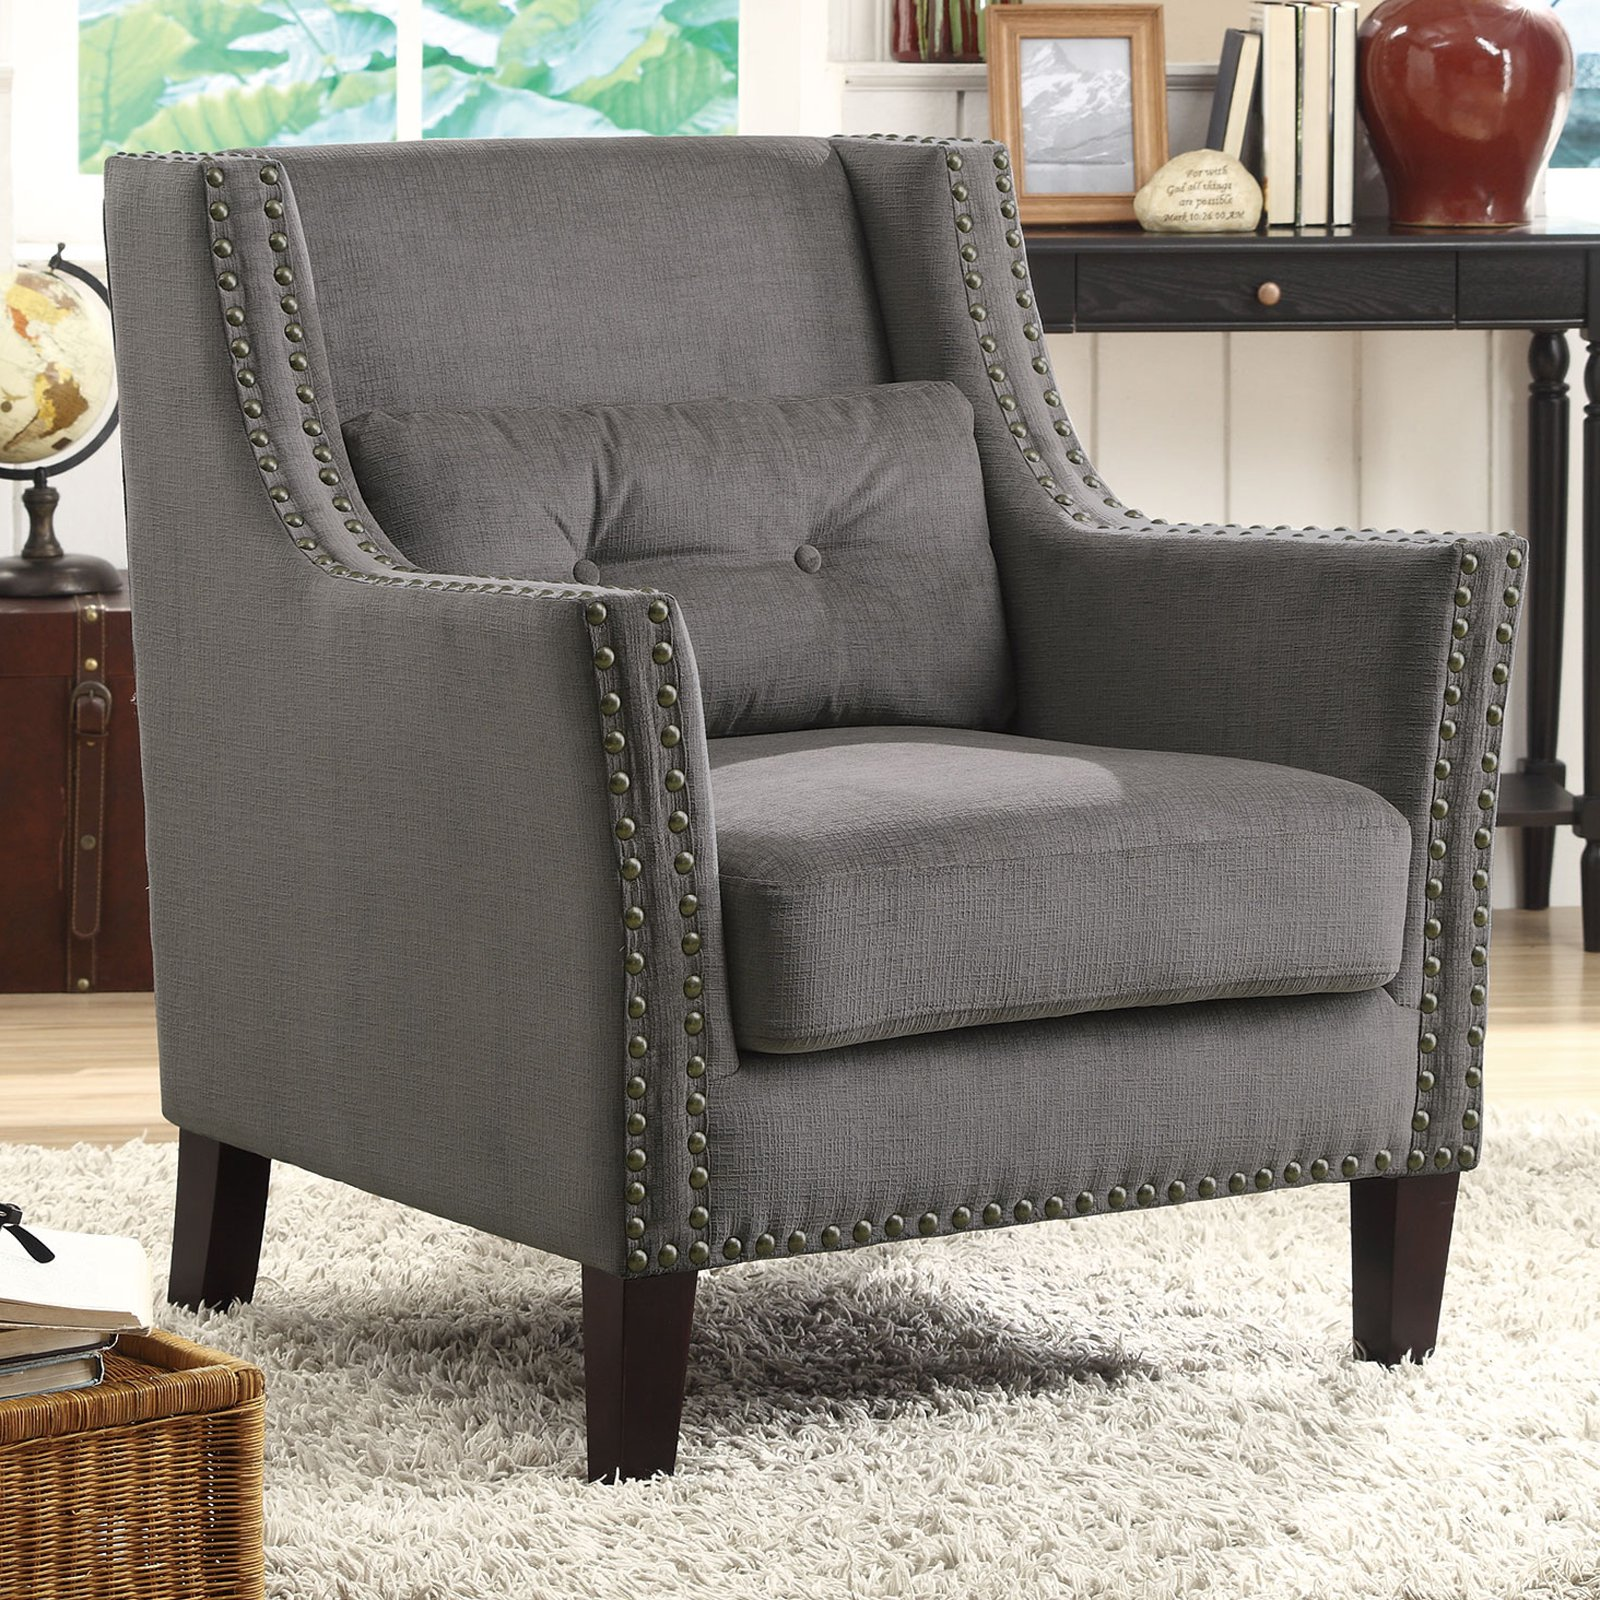 Coaster Company Chenille Accent Chair, Grey by Coaster Company